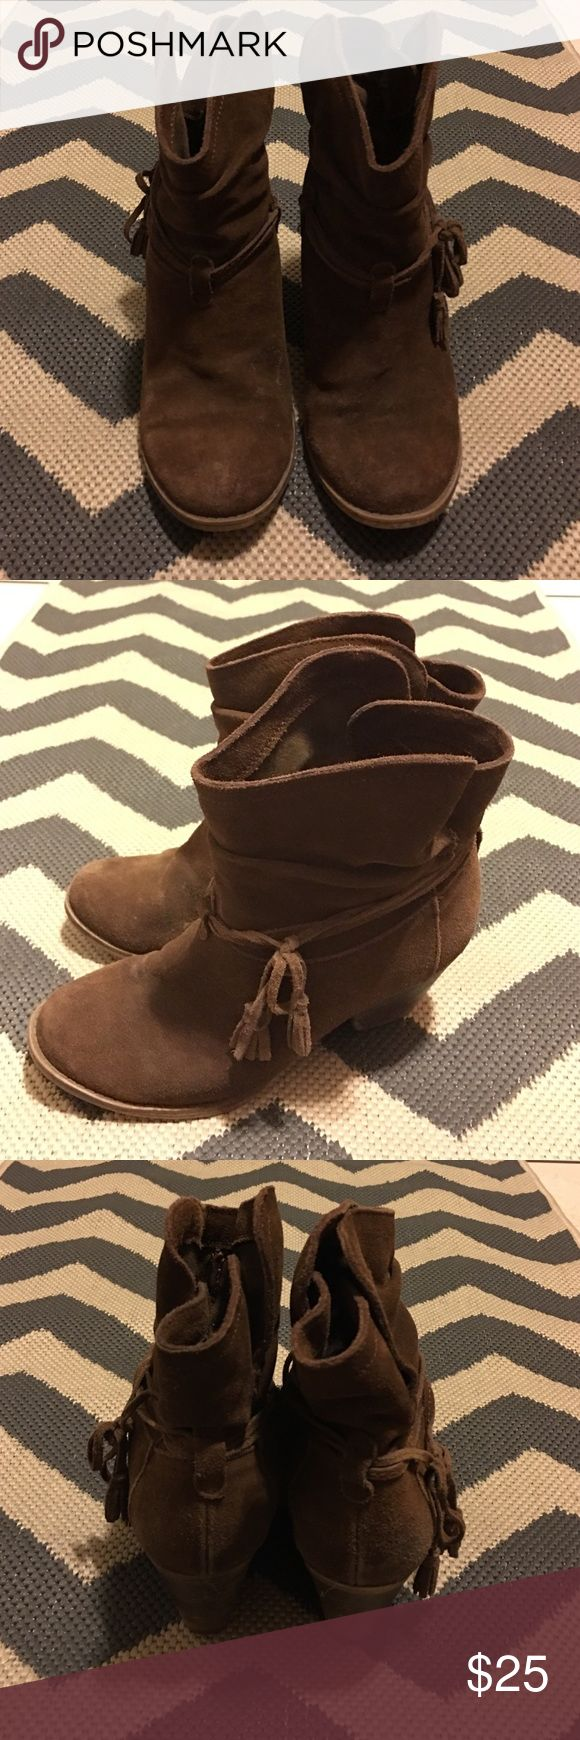 Short Suede Brown Cowboy Boots Size 8 Super comfortable short Cowboy booties. Gently worn and overall in good shape. MIA Shoes Ankle Boots & Booties